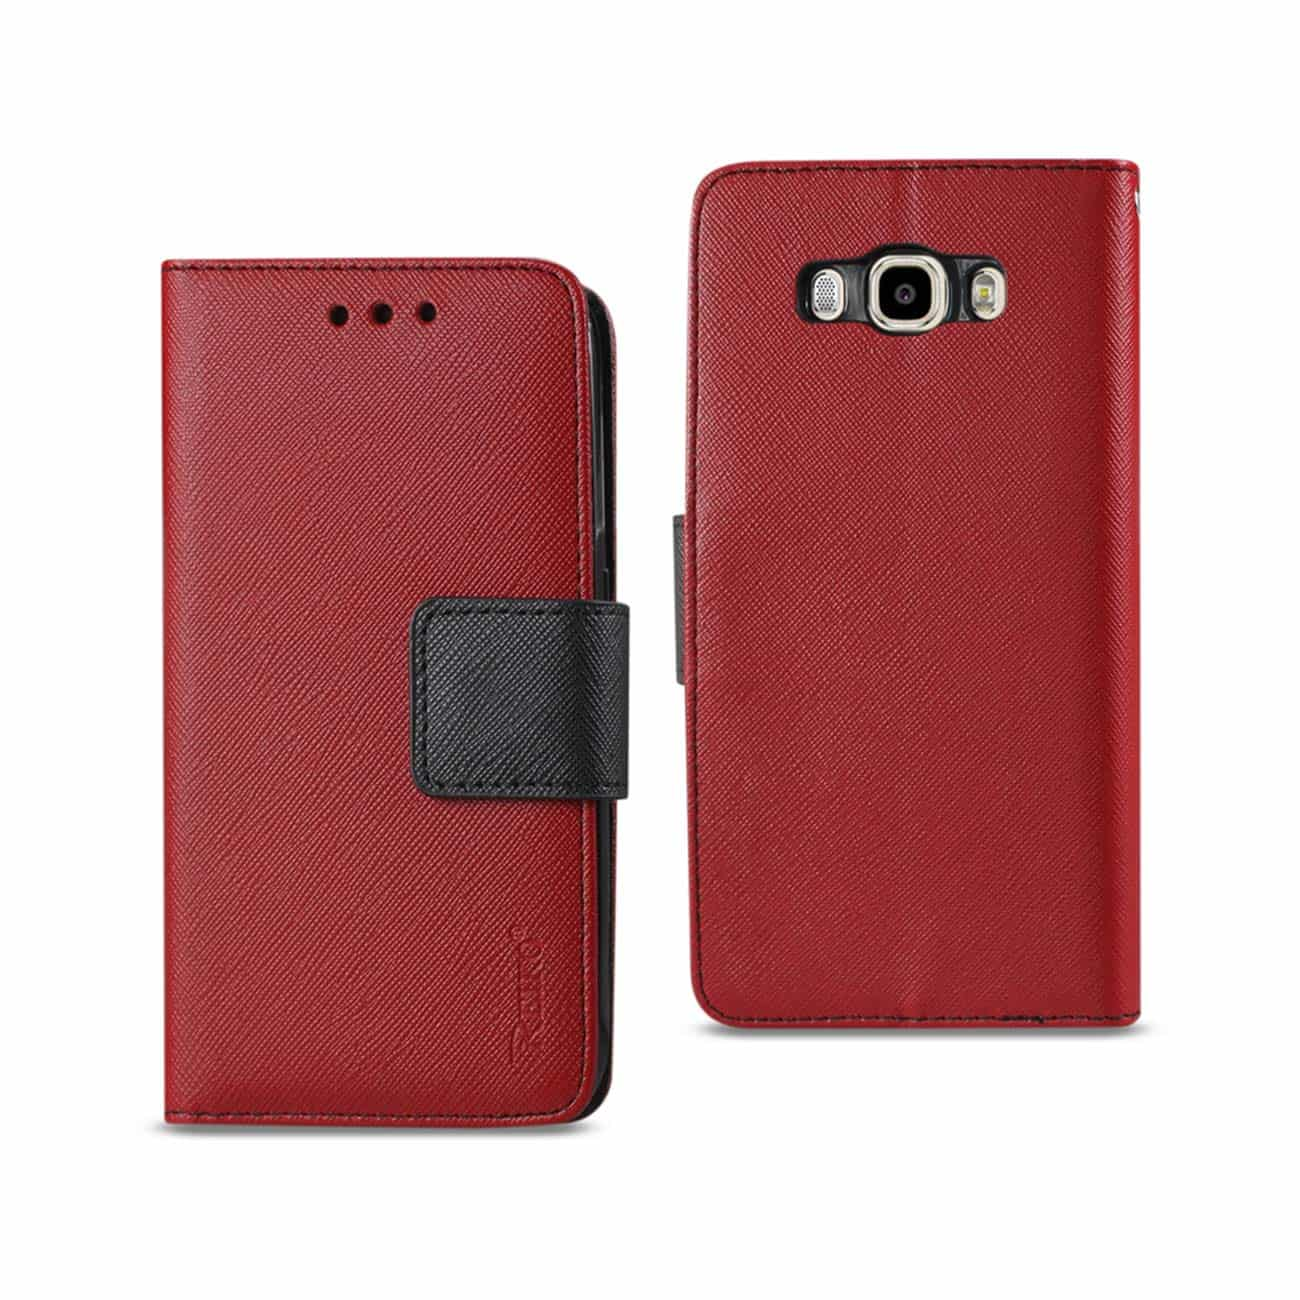 SAMSUNG GALAXY J7 (2016) 3-IN-1 WALLET CASE IN RED